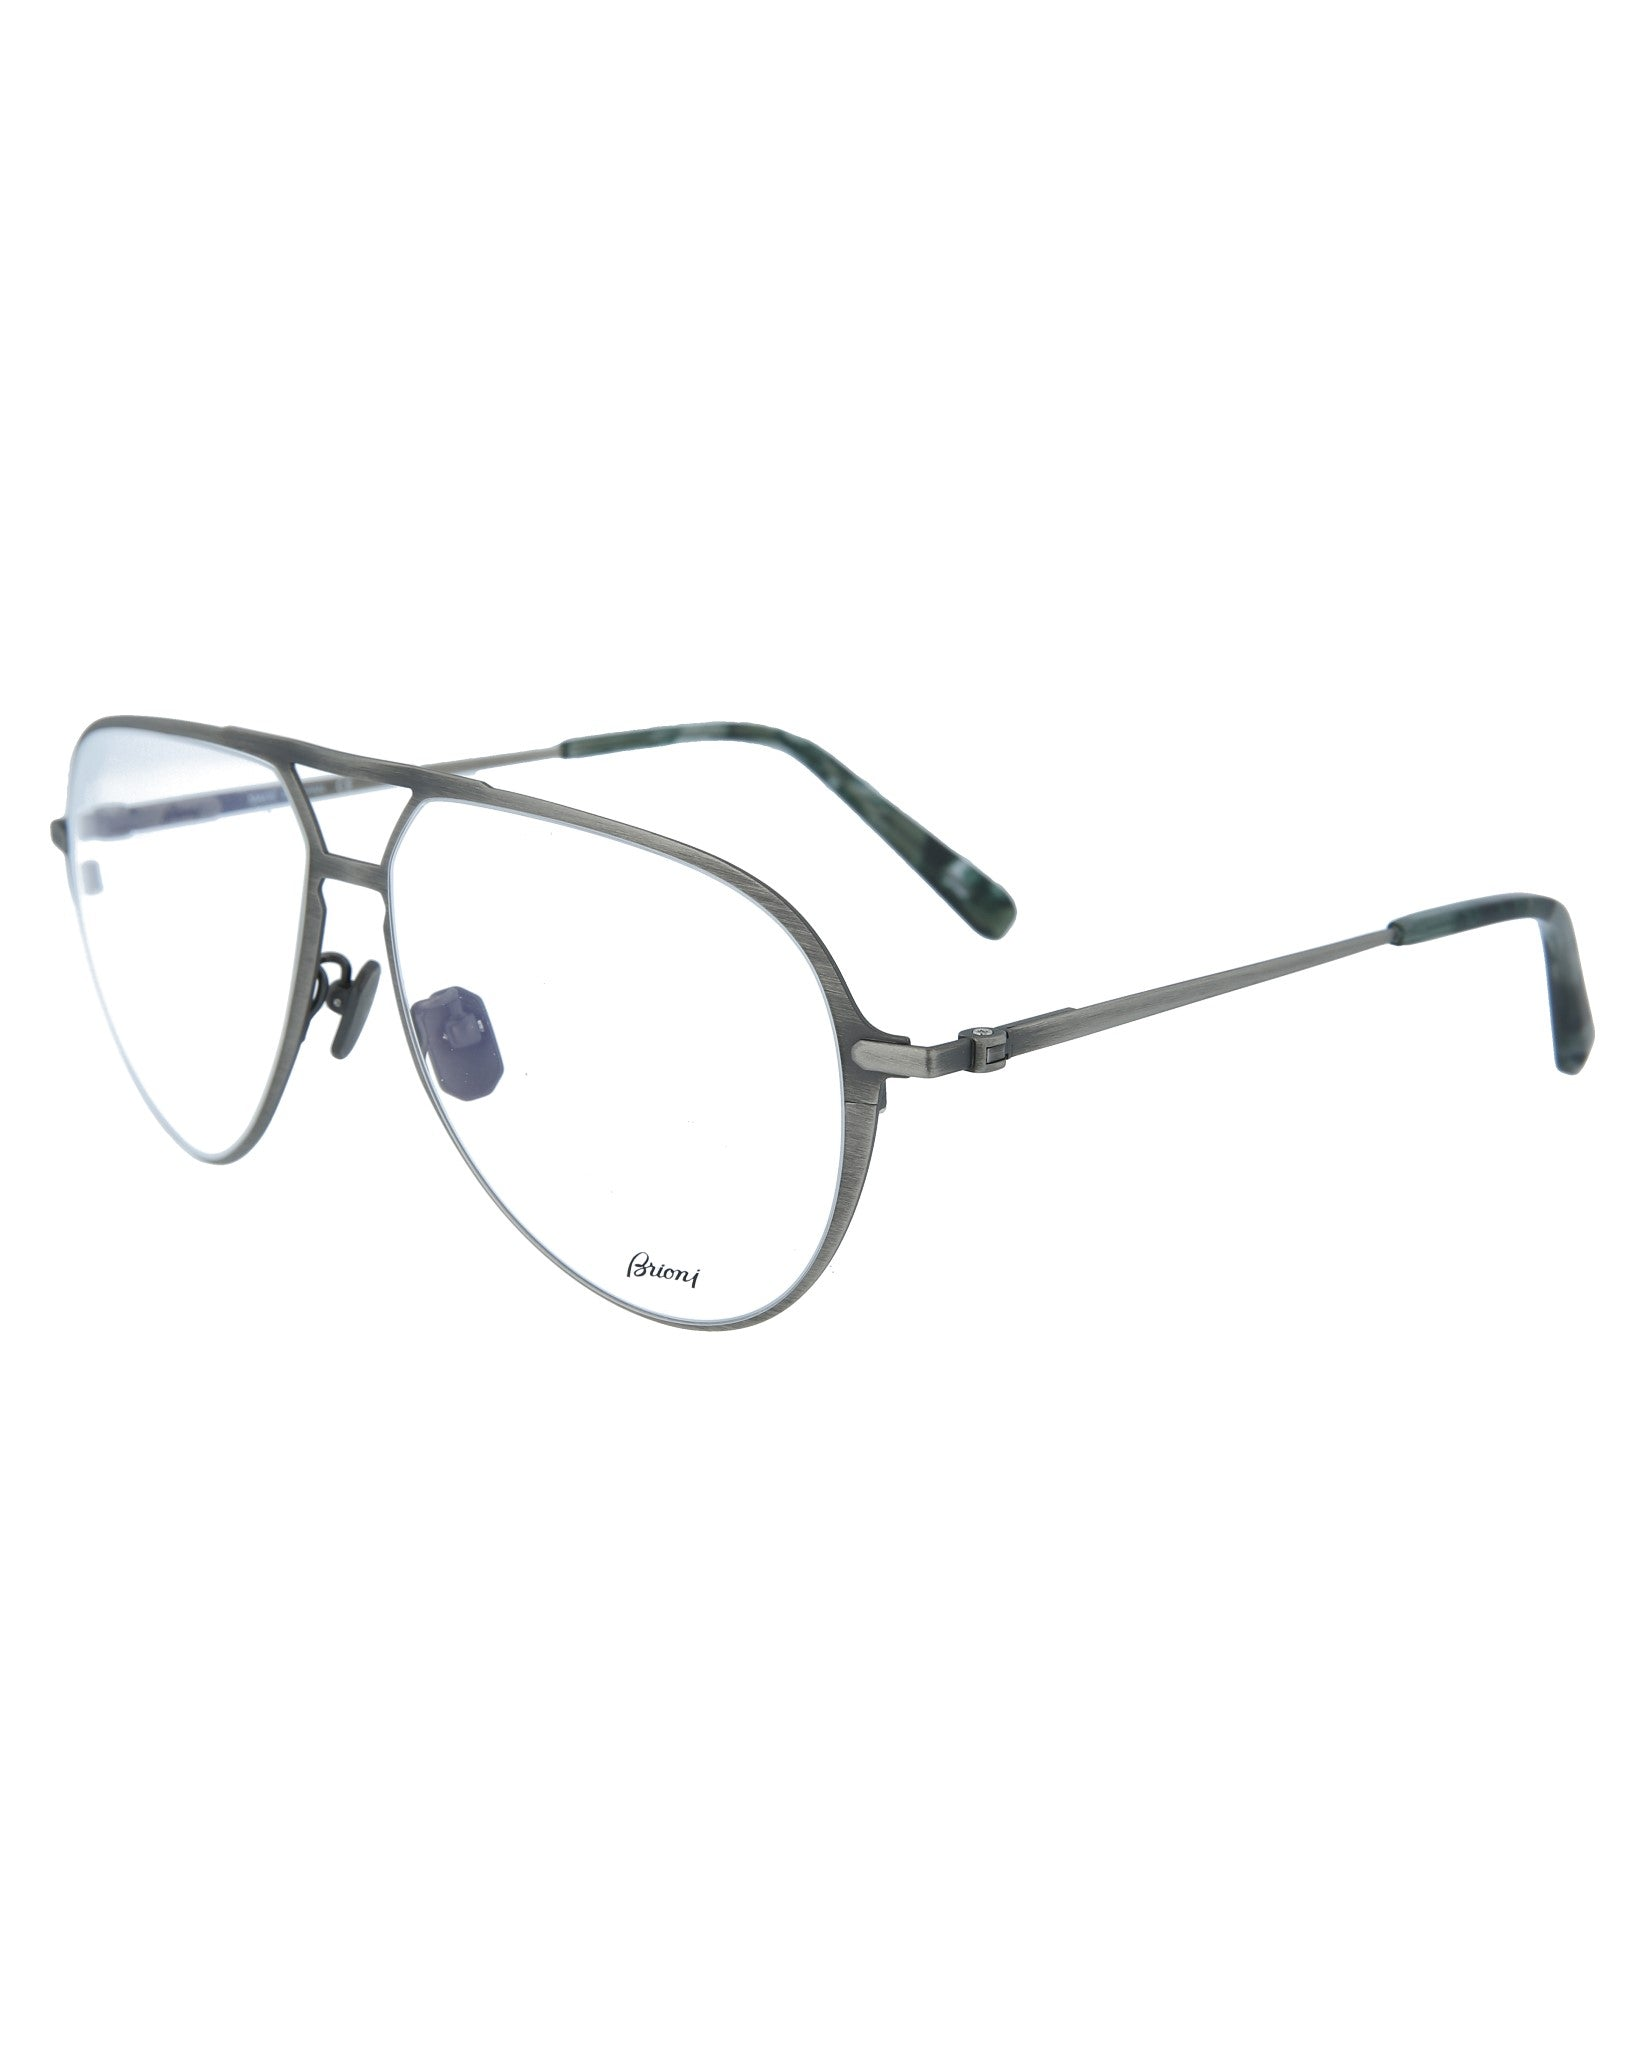 Brioni Aviator Optical Frames